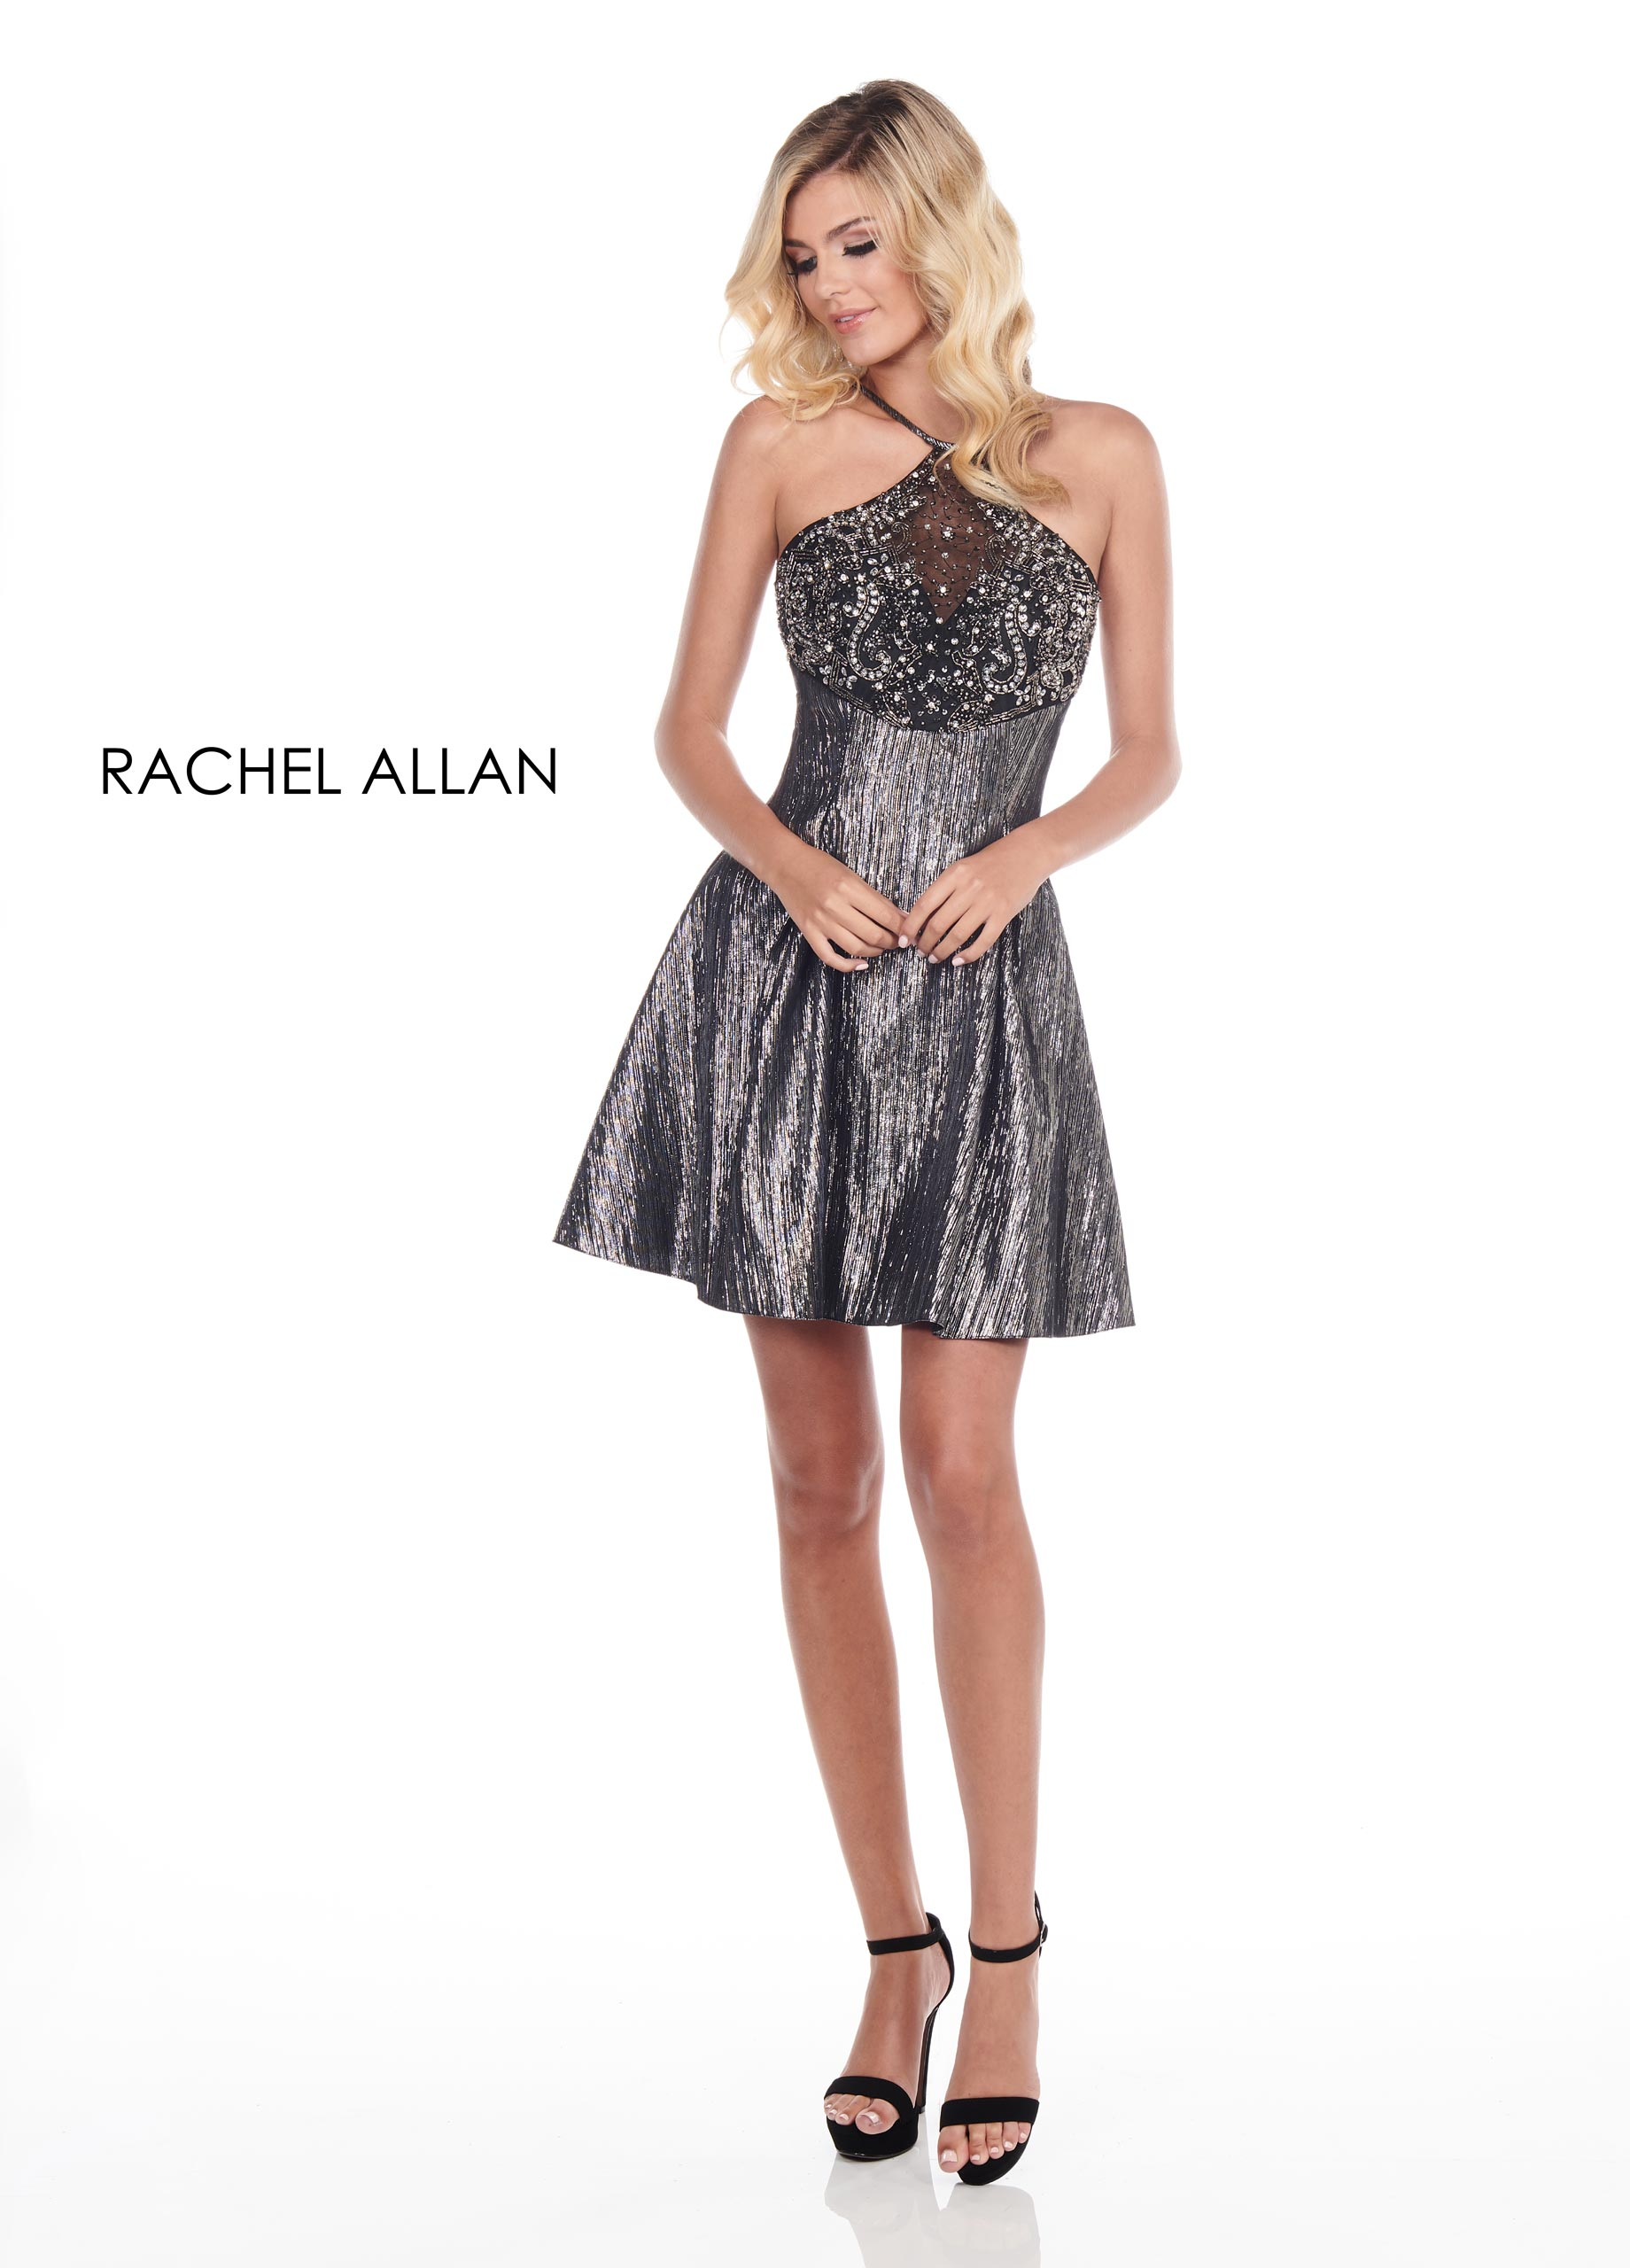 Halter A-Line Homecoming Dresses in Silver/gunmetal Color